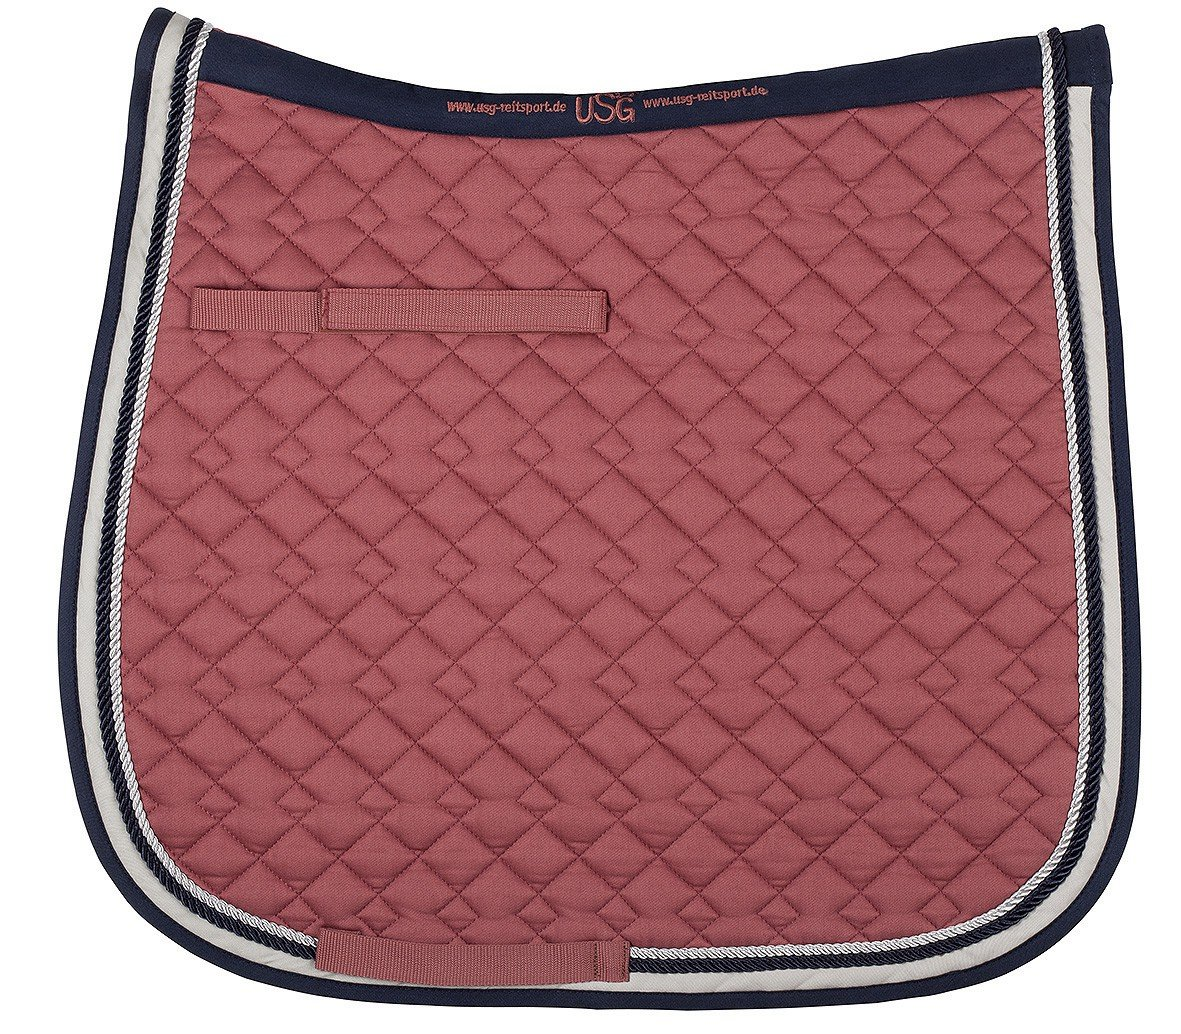 USG Dressage Quillted Saddle Cloth with USG Embroidery, Full, Red/ Navy/ Beige/ Mud with Border UNJFB 58935